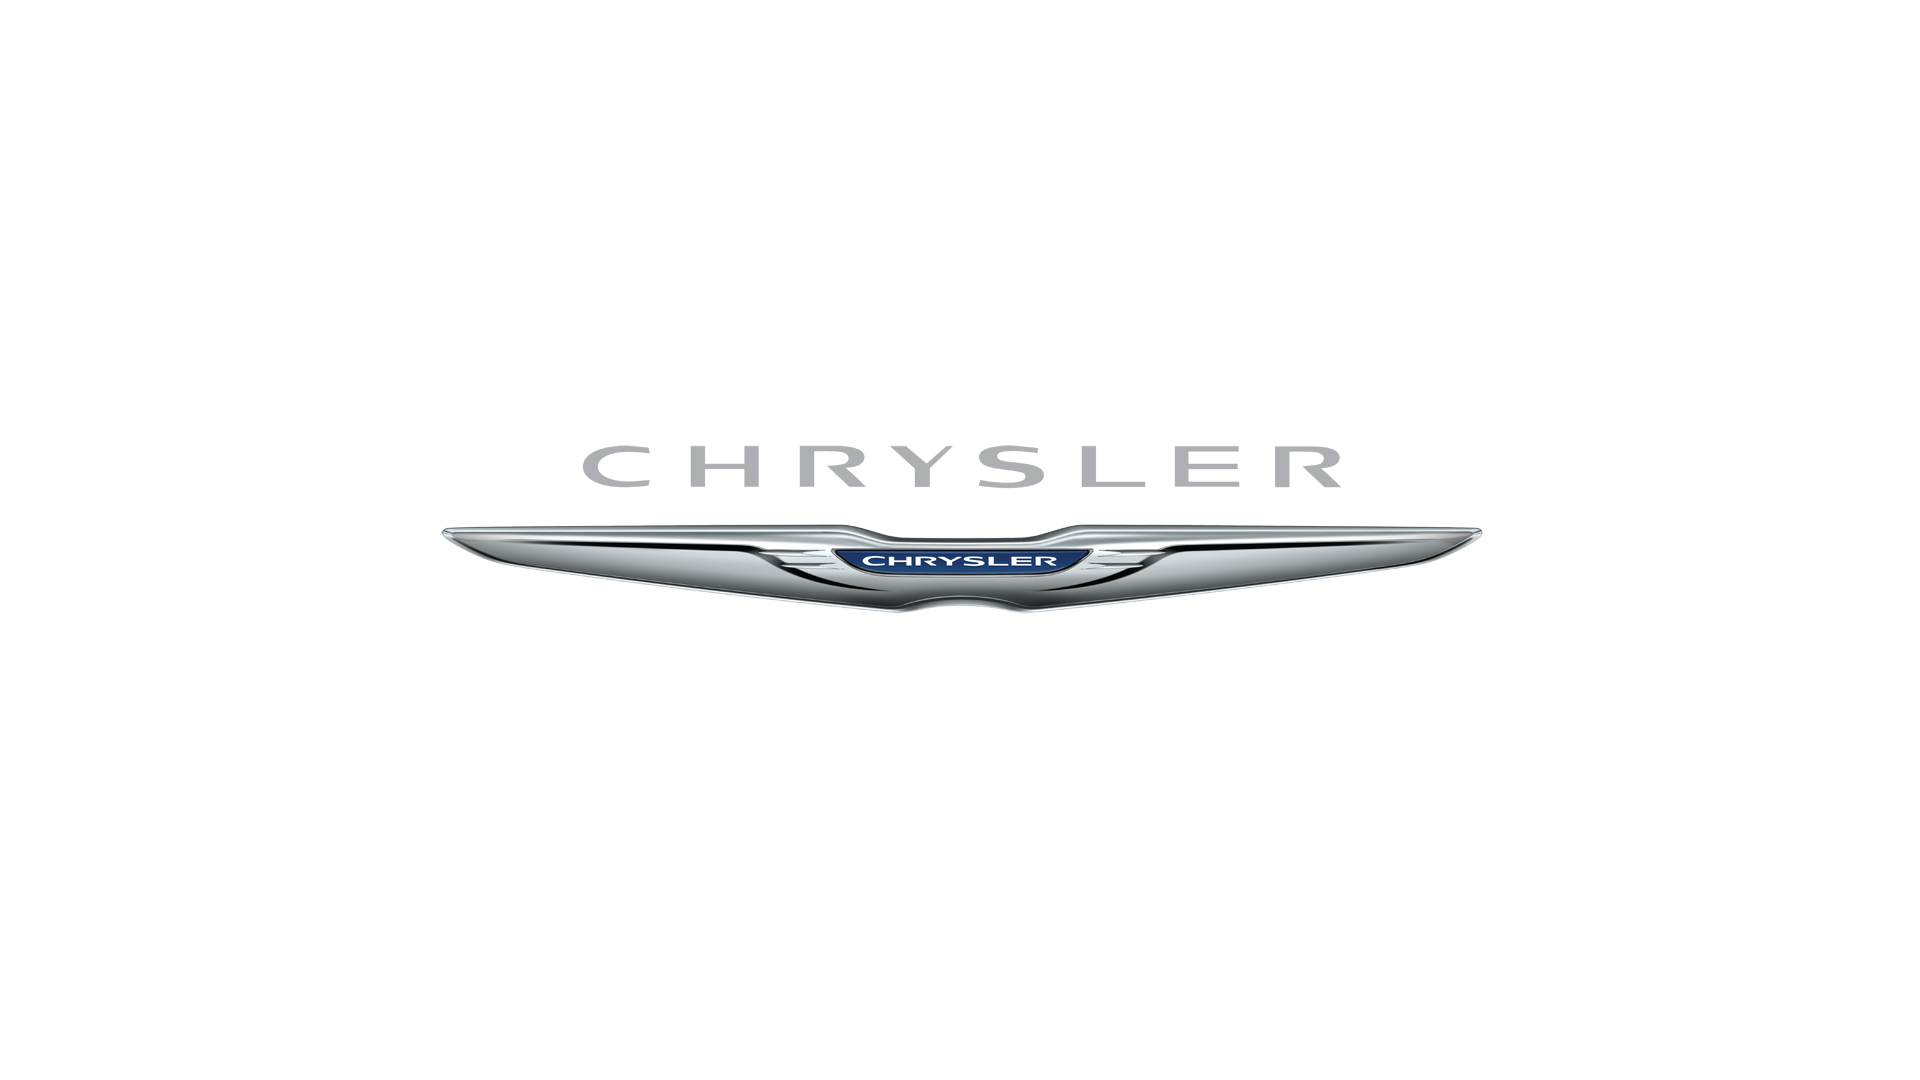 Chrysler logo hd png meaning information carlogos chrysler logo 2010 present 1920x1080 hd png biocorpaavc Choice Image